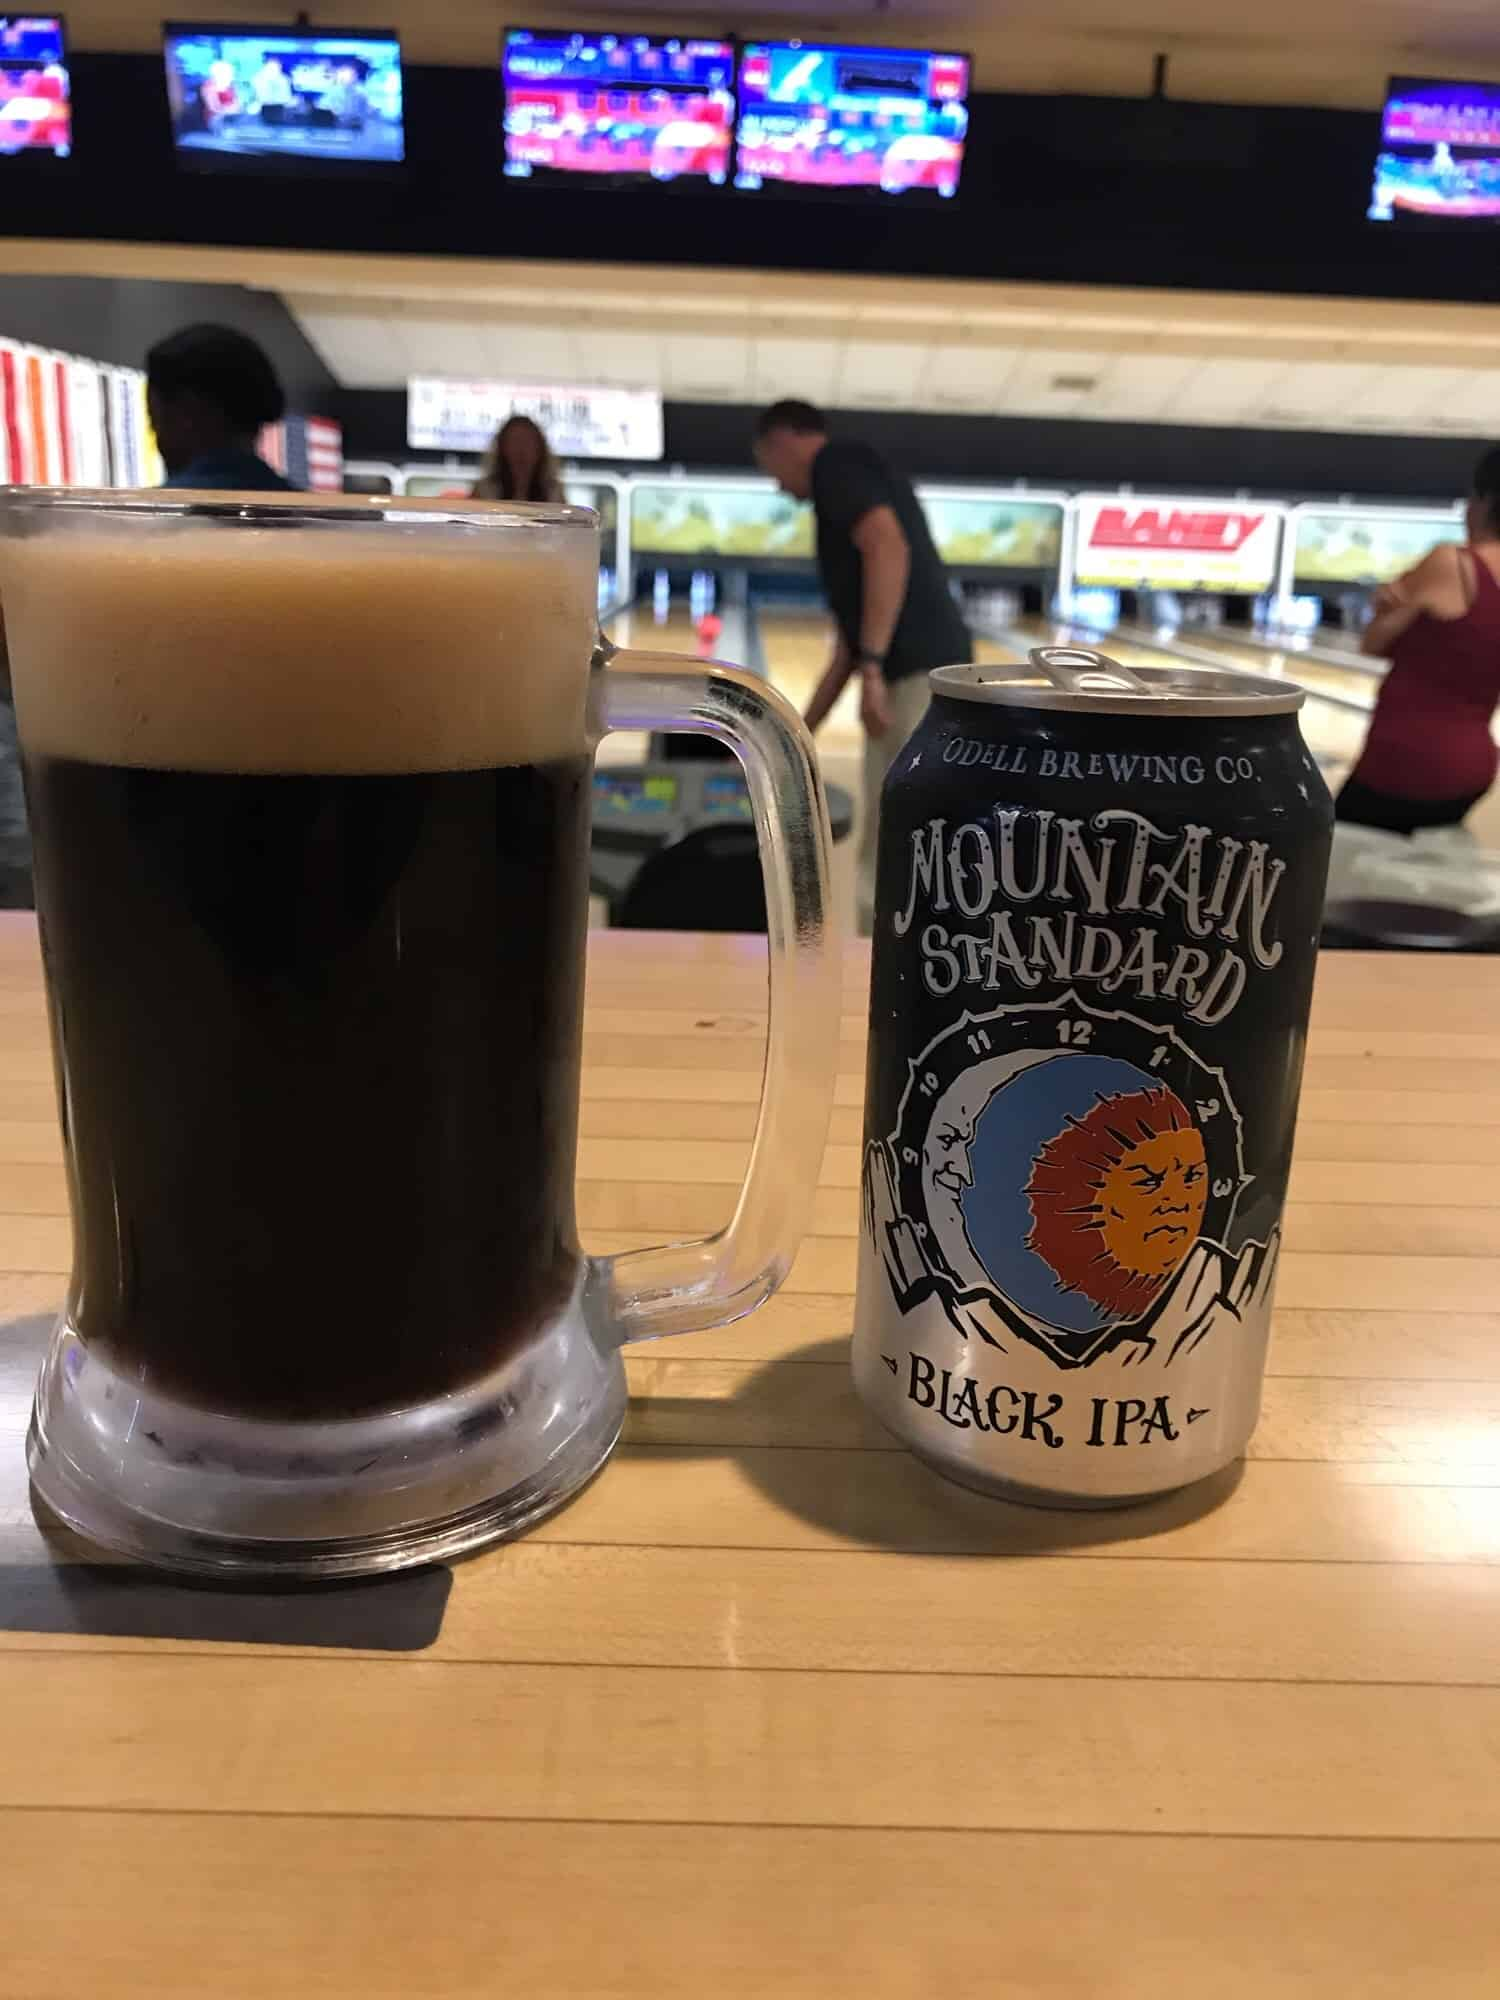 Mountain Standard Black IPA